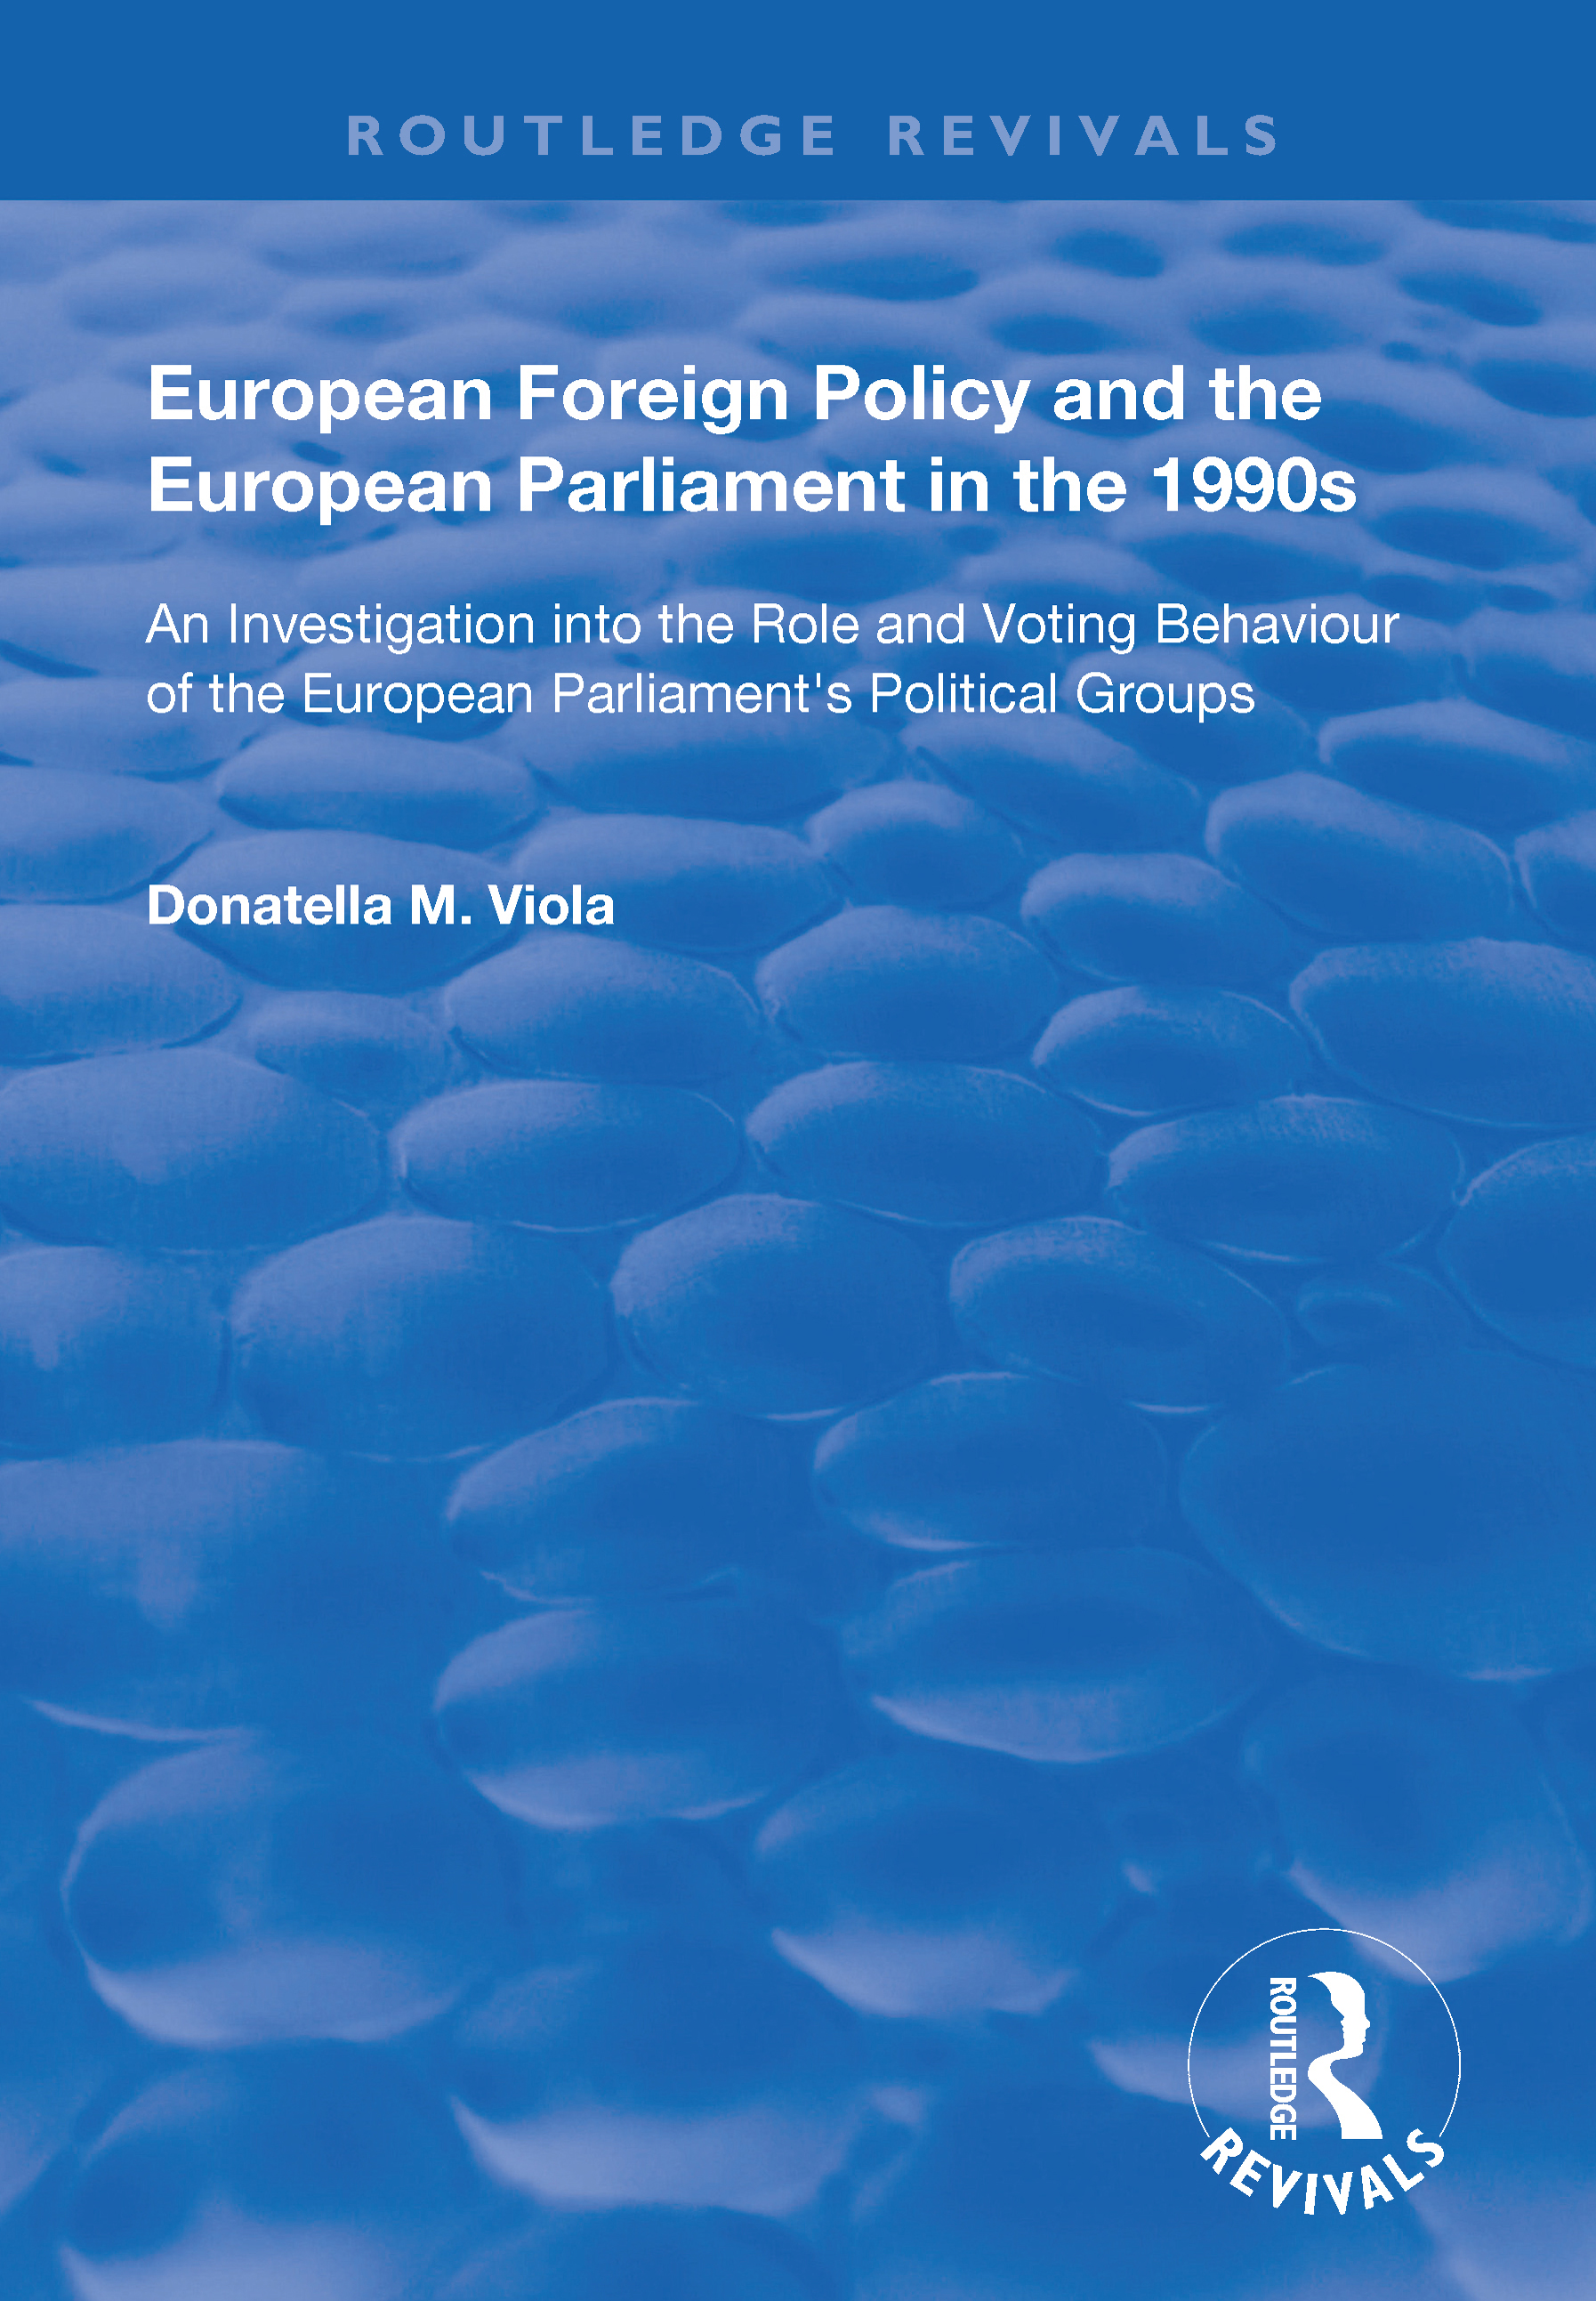 European Foreign Policy and the European Parliament in the 1990s: An Investigation into the Role and Voting Behaviour of the European Parliament's Political Groups, 1st Edition (Hardback) book cover